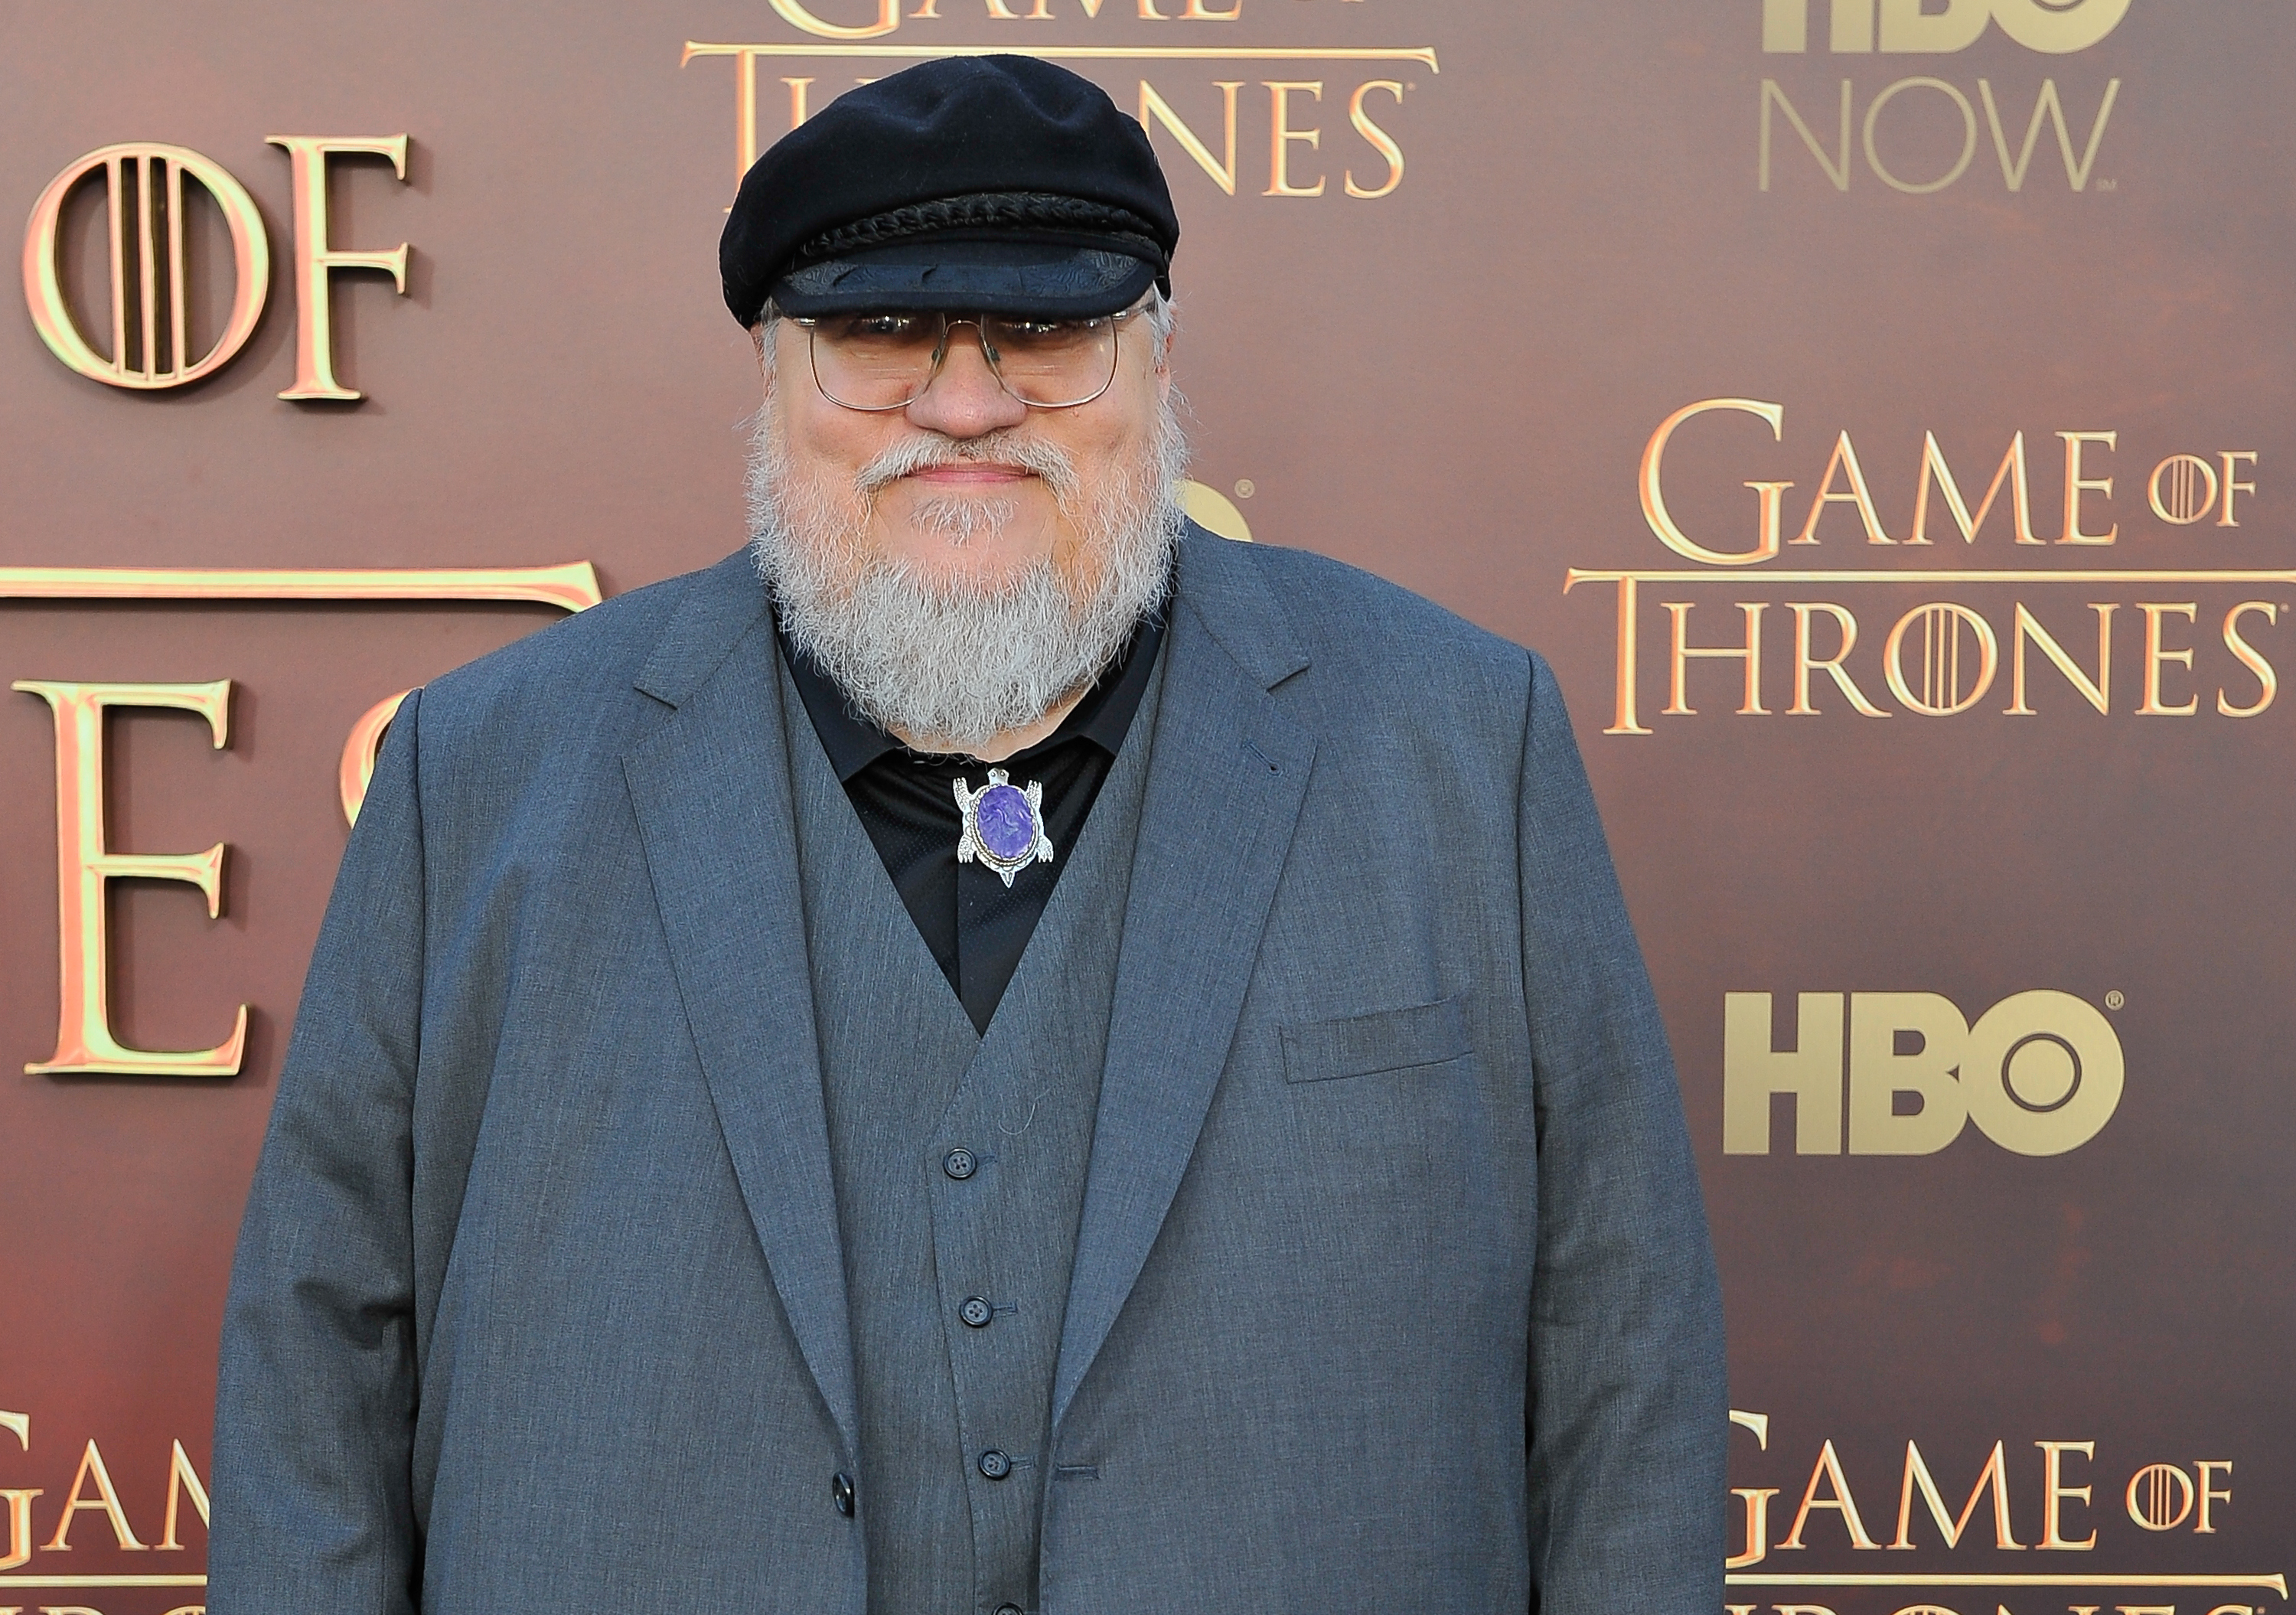 George R.R. Martin Writer/Co-Executive Producer attends HBO's  Game Of Thrones  Season 5 San Francisco Premiere at San Francisco Opera House on March 23, 2015 in San Francisco.